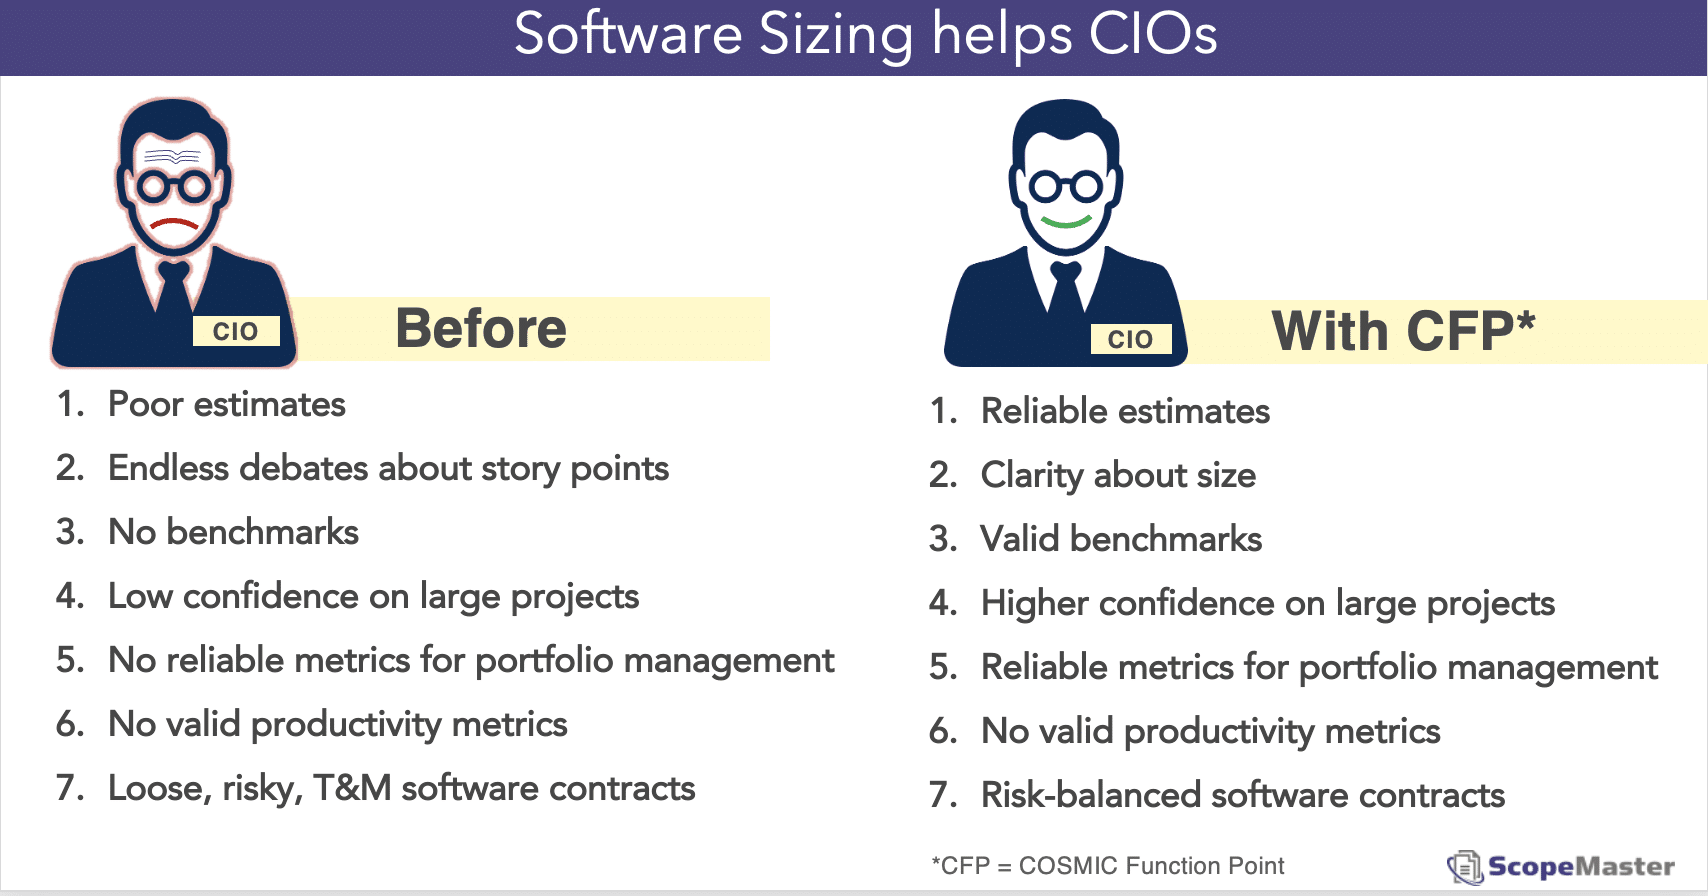 Software measurement based on COSMIC Function Points, unlocks software metrics that help CIOs manage more effectively.